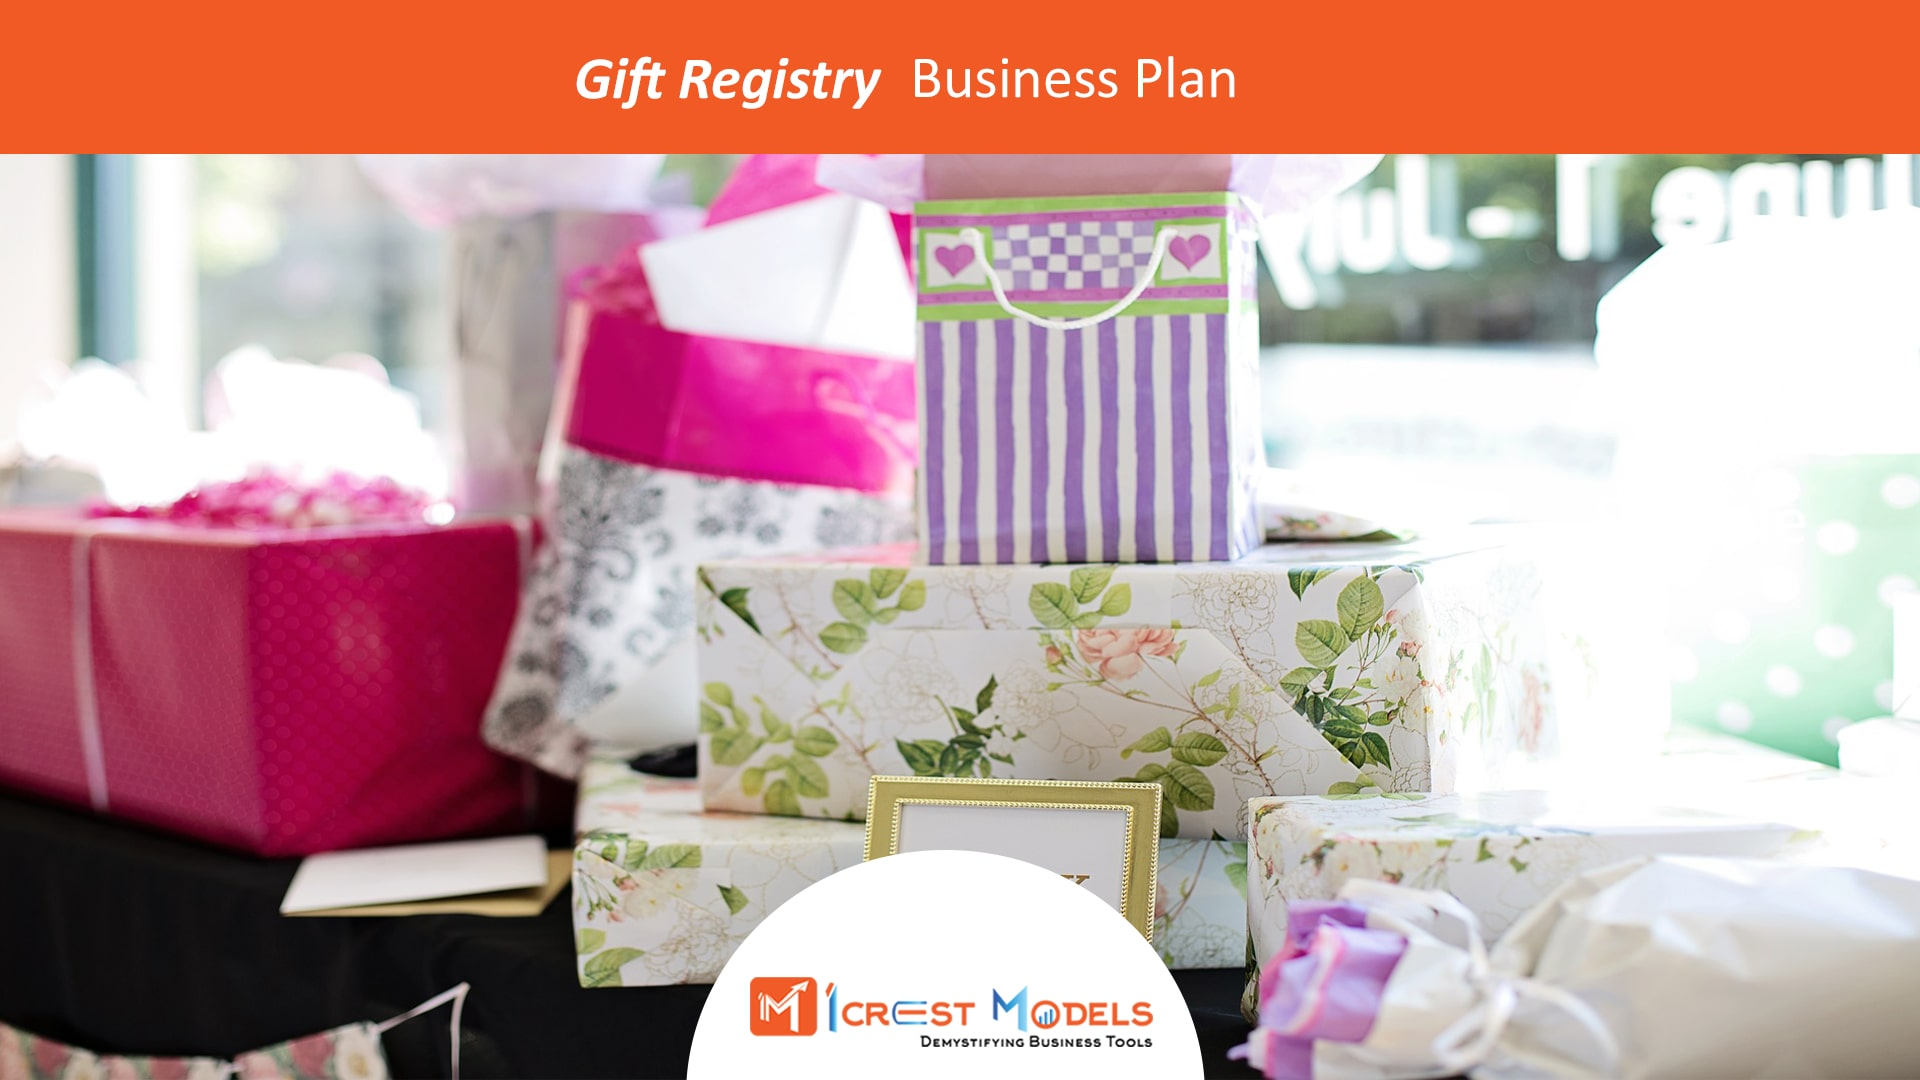 Business Plan of an Online Gift Registry